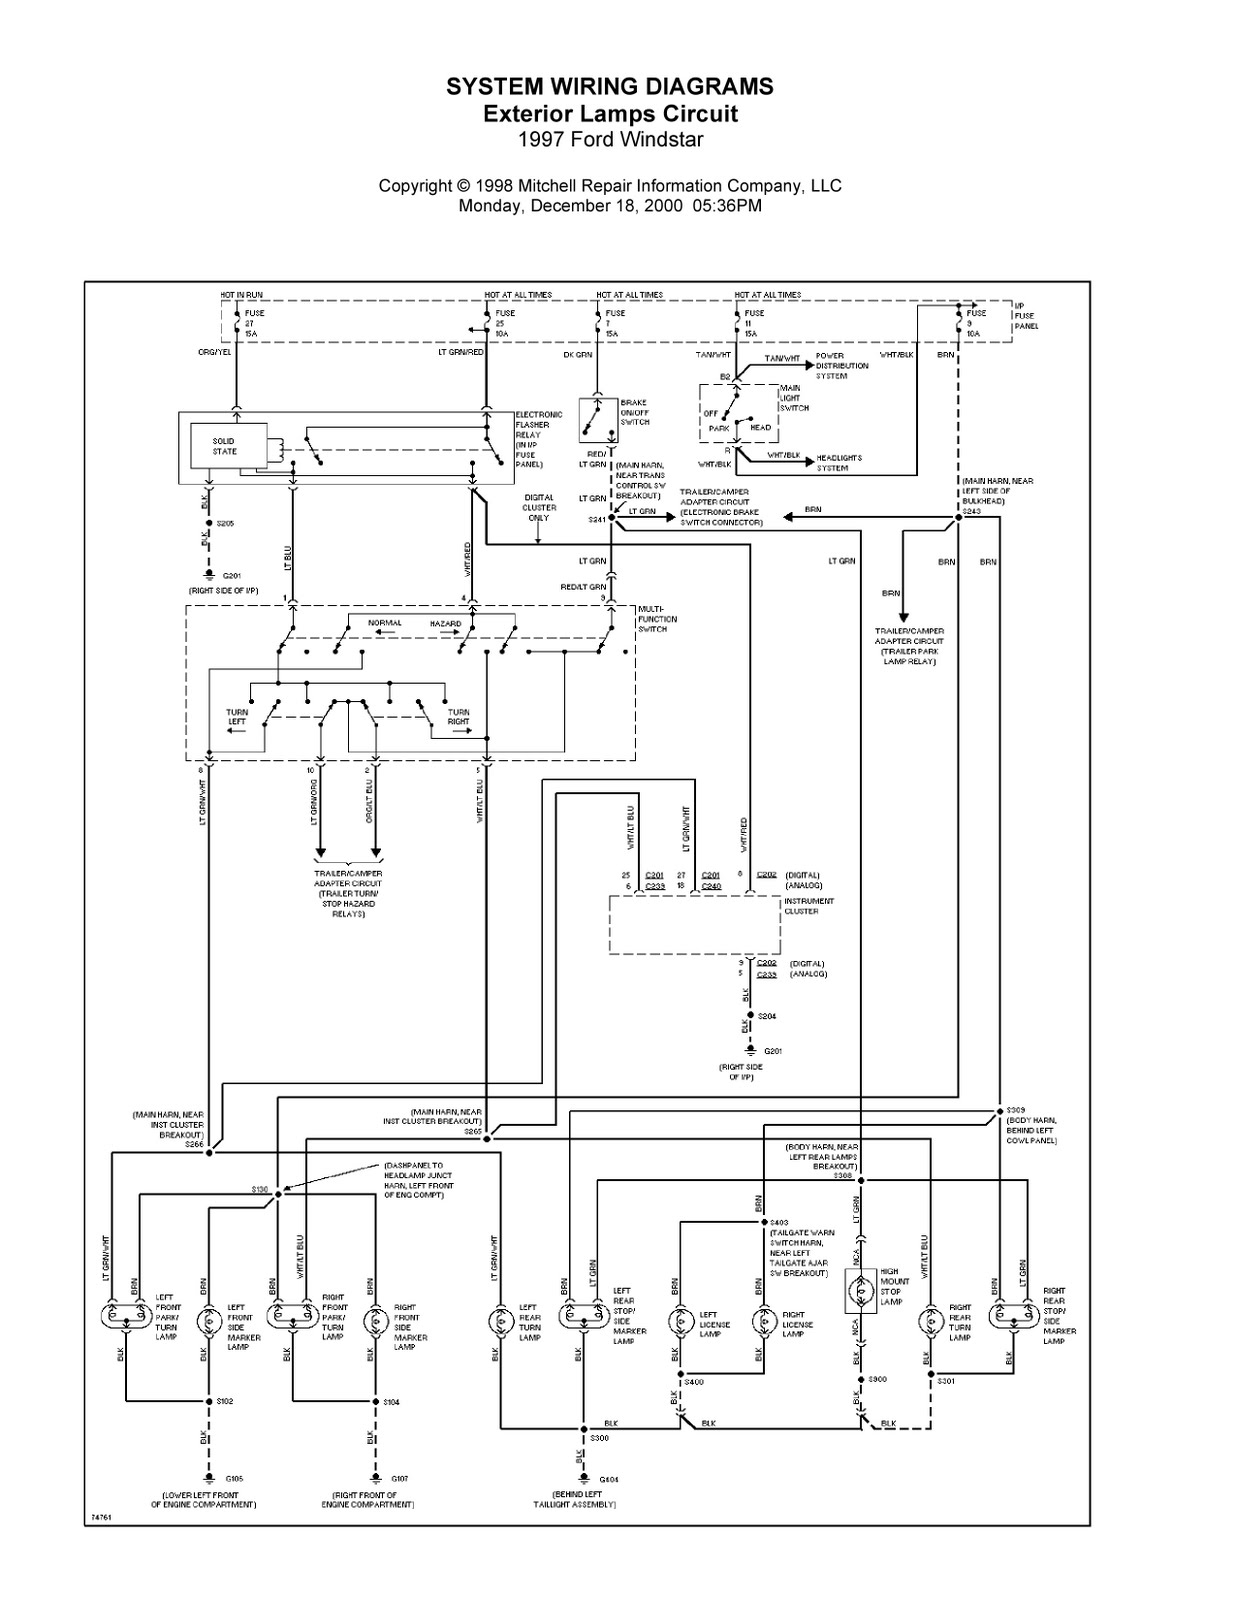 medium resolution of 1997 ford windstar complete system wiring diagrams 2000 ford windstar wiring diagram 2001 ford windstar electrical